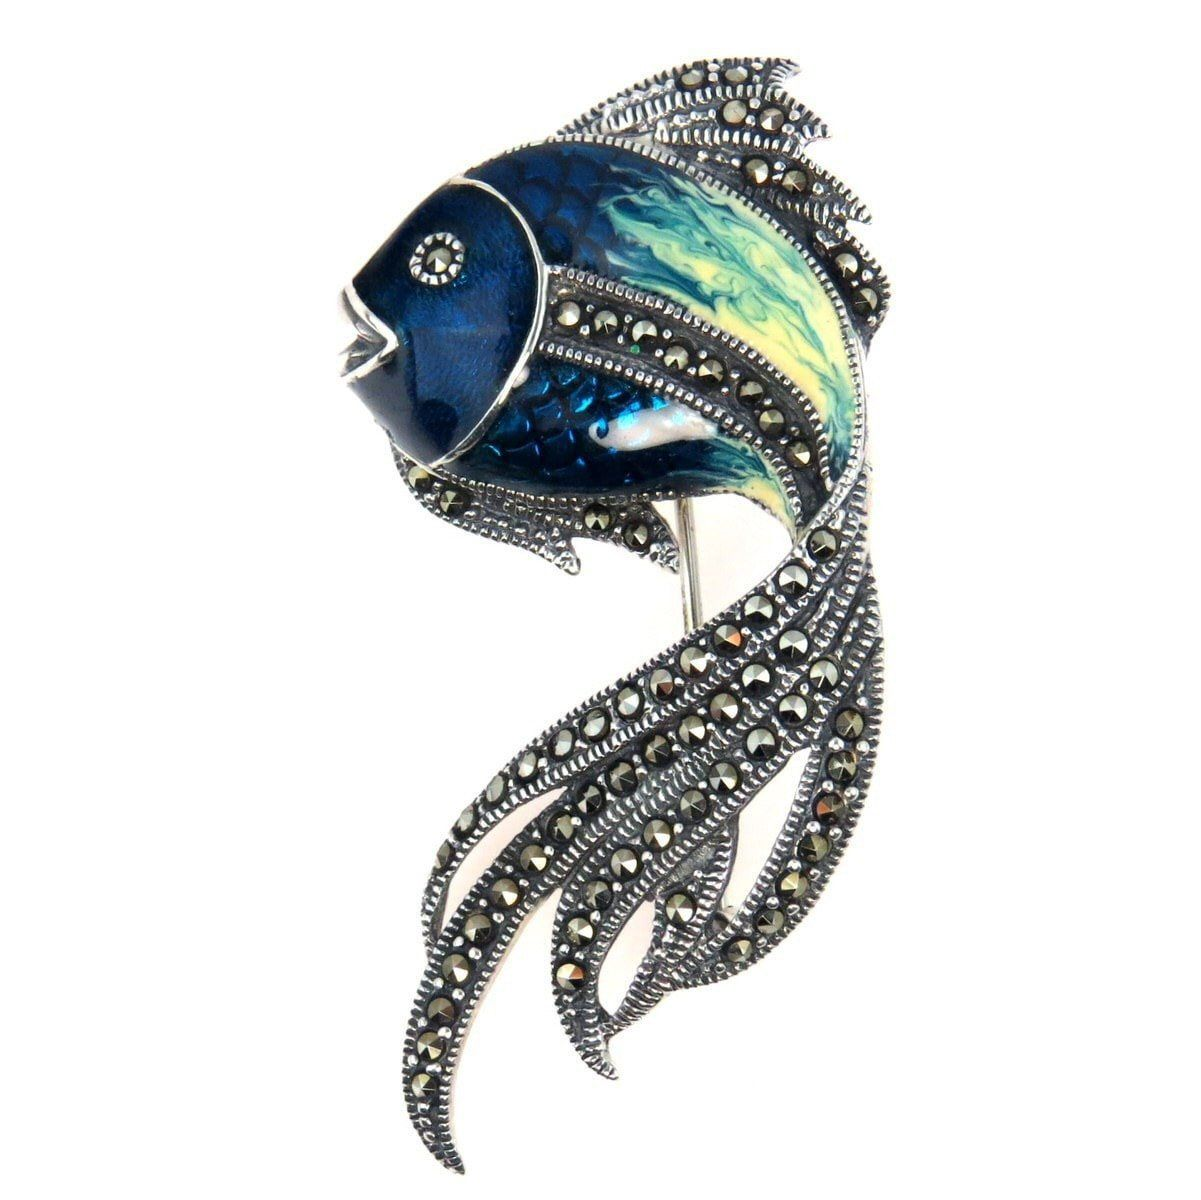 "Sterling Enamel Marcasite Koi Fish Brooch, Vintage, 1930s to 1980s   This happy fish brooch is so cute!  Made in Sterling Silver, hand applied vitreous enamel in shades of blue on the body.  The eyes, fins, and gills are set with marcasite pave. This cutie measures 2 1/4"" by 1 1/8"" and weighs approximately 10 gram. Pre-owned and in excellent condition with no damage. Marked 925, AM for the maker and the number 1407. Estimated to date from the 1980's.  ✨ Only one at…"